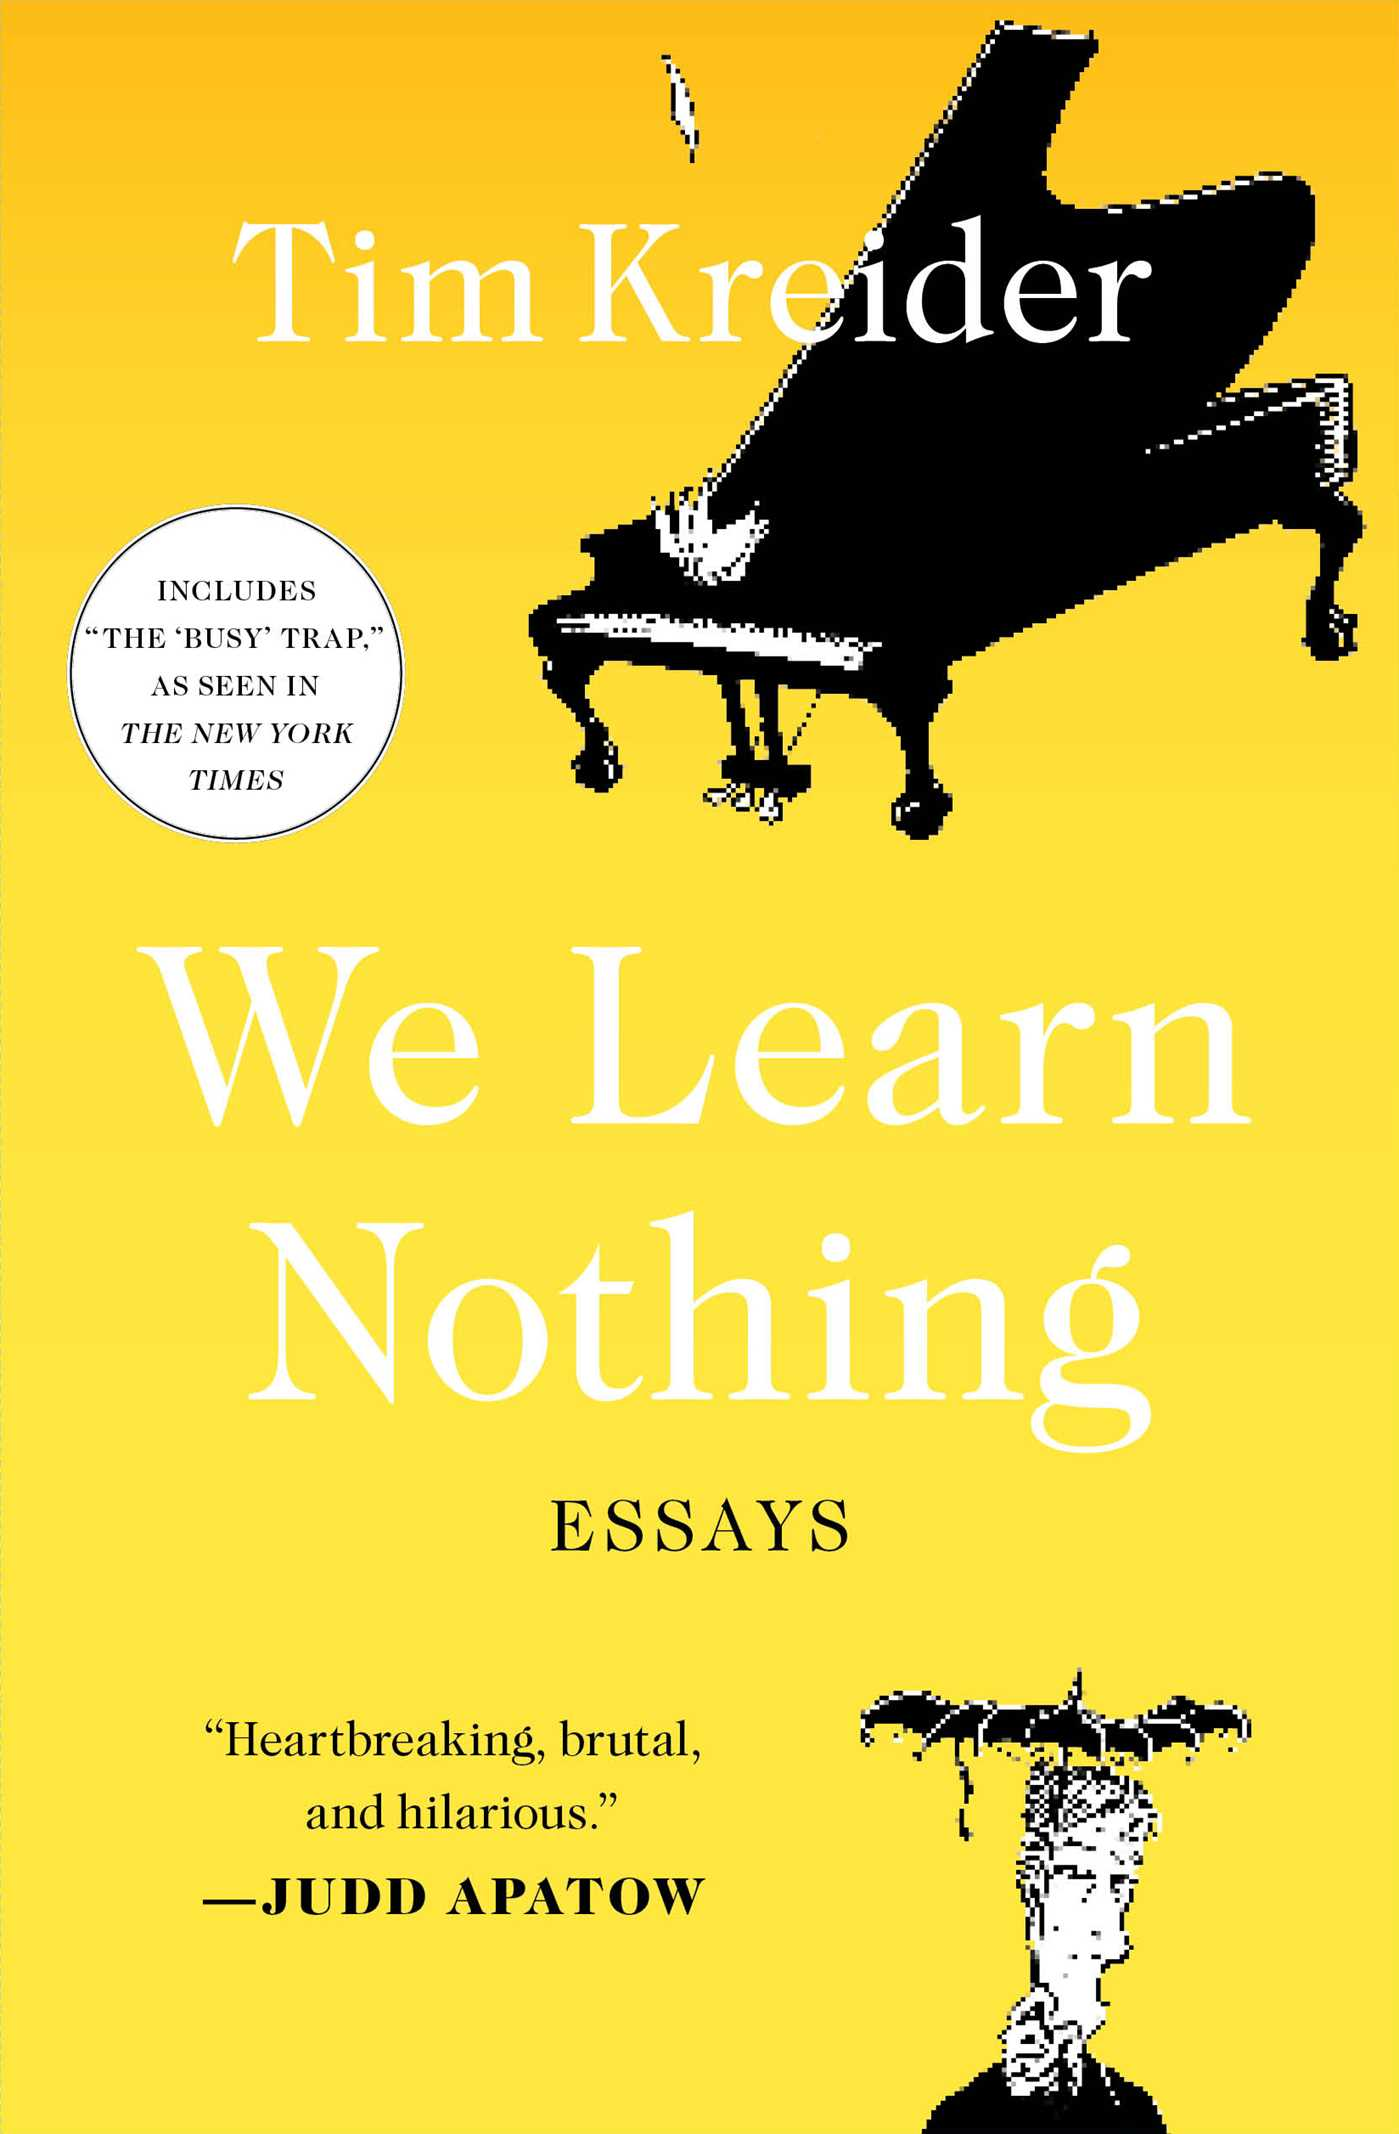 We learn nothing 9781439198728 hr